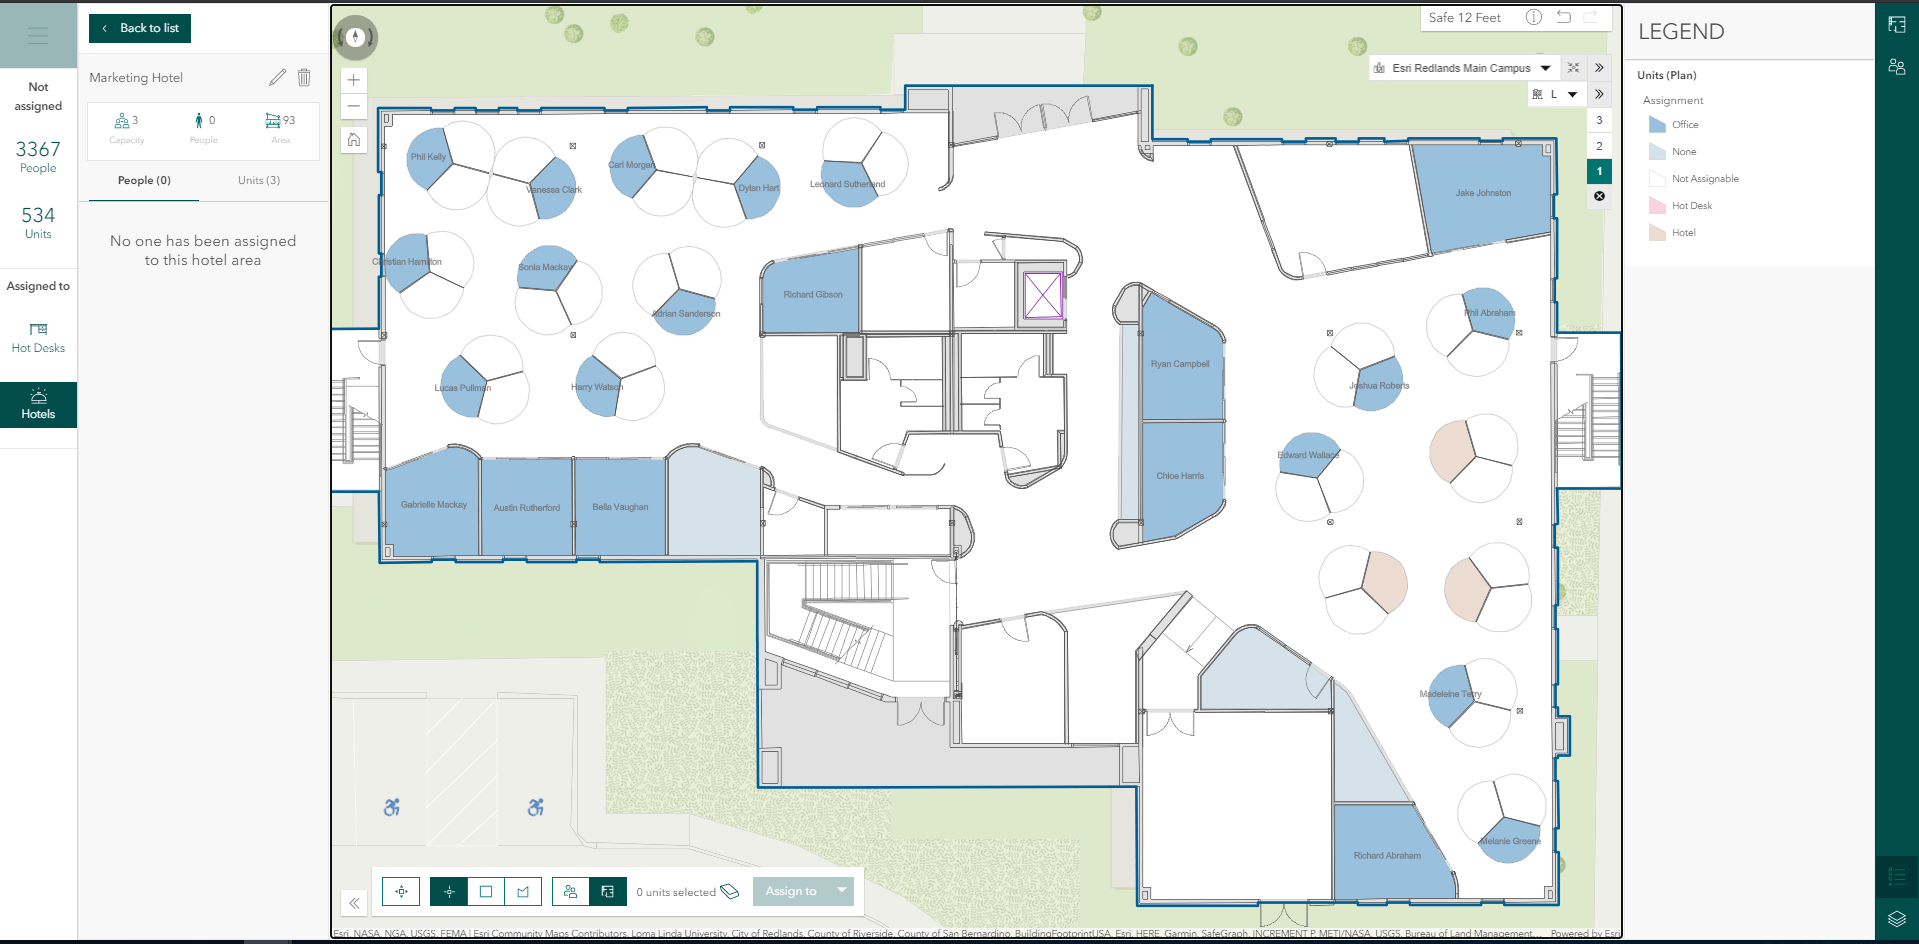 Space Planner showing space availability on an indoor map